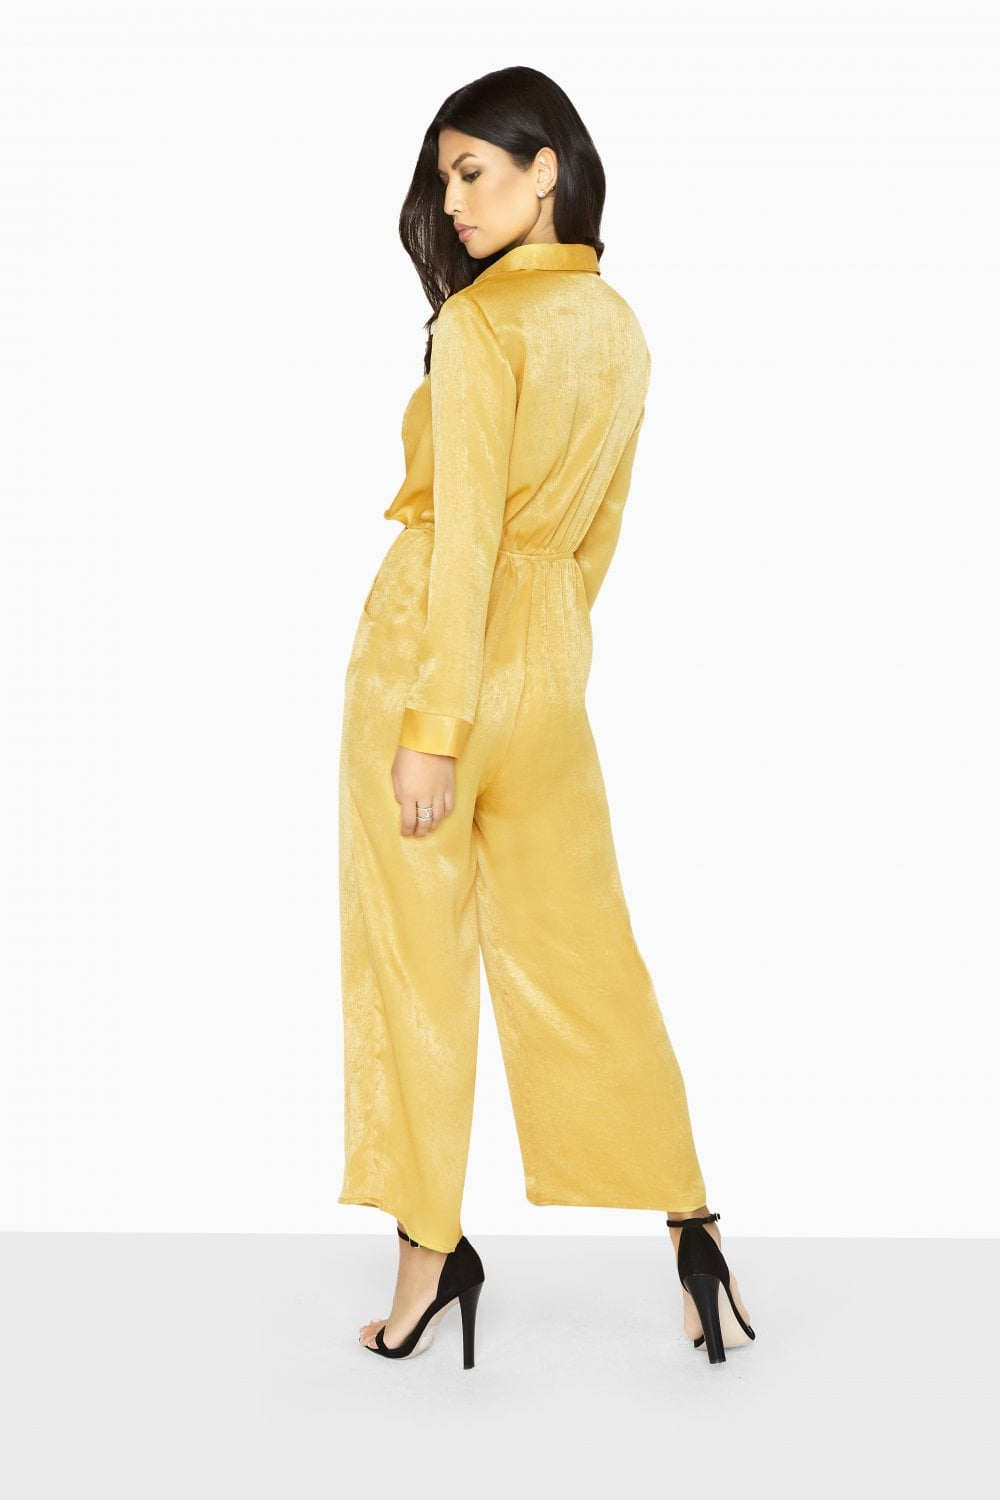 4b1b73e90b53 Outlet Girls On Film Liquid Gold Utility Jumpsuit - Outlet Girls On ...